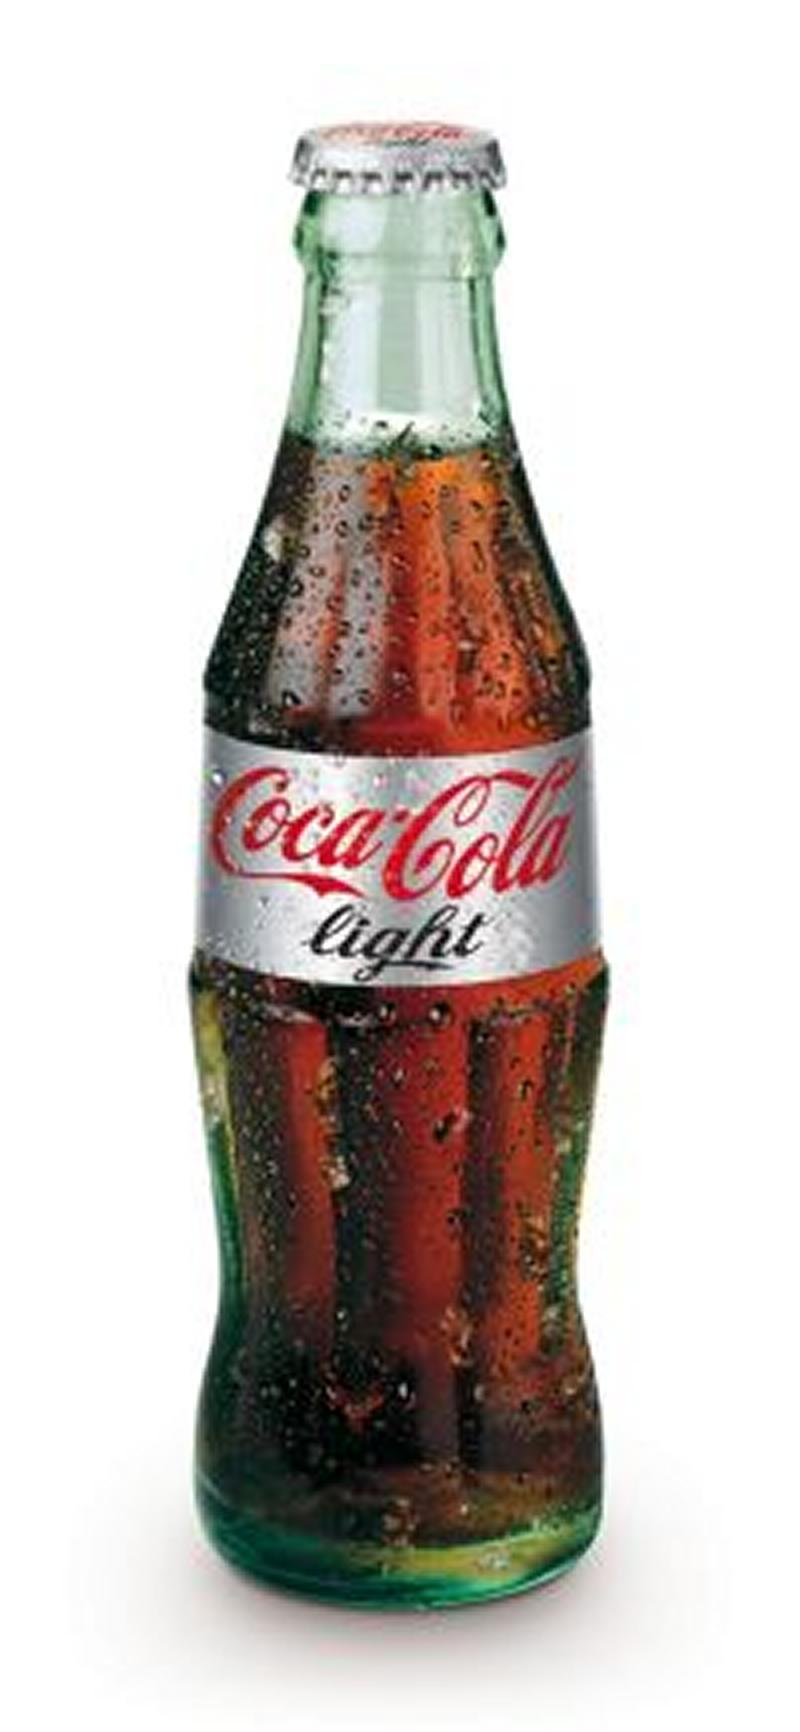 Bodegas Orvi - COCA-COLA LIGHT 20CL - Bodegas Orvi